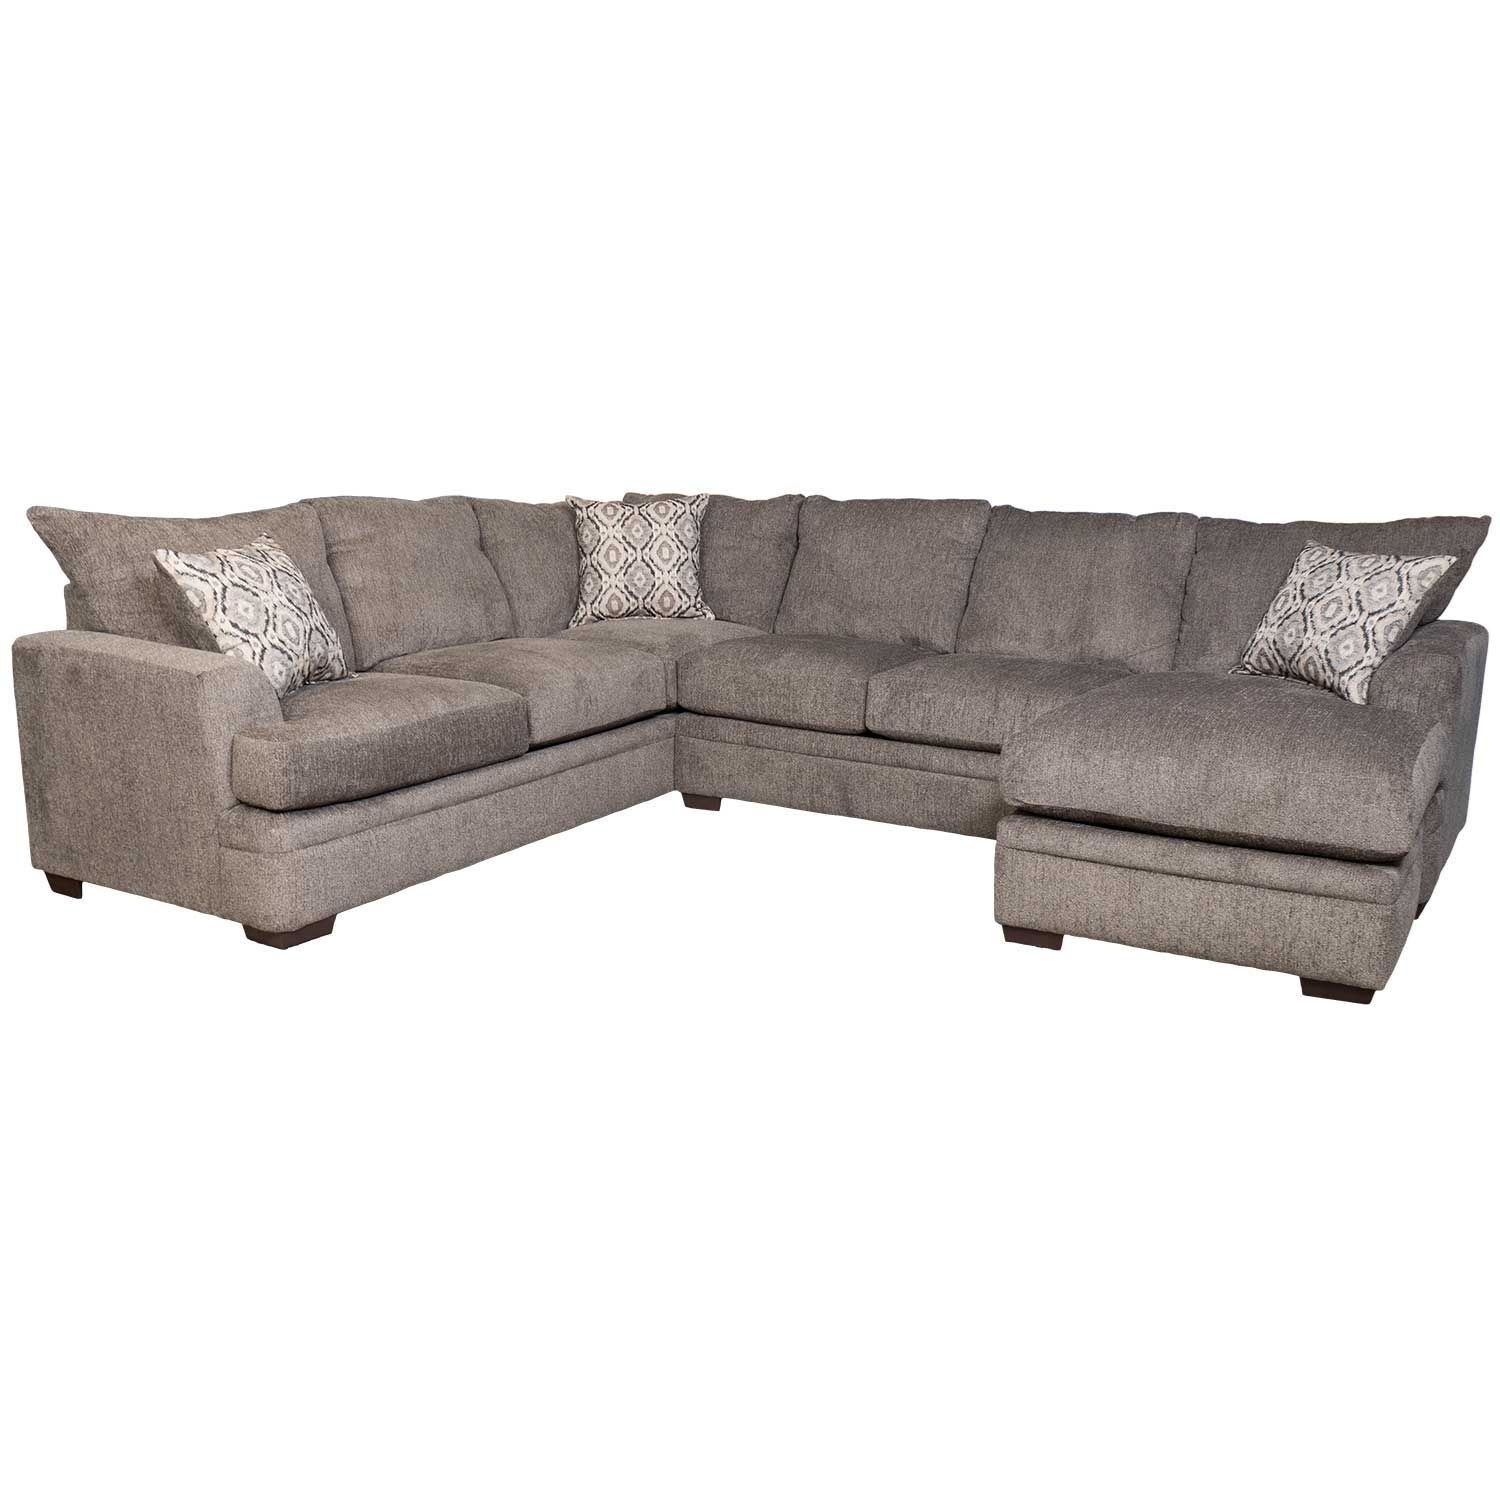 2Pc Pewter Raf Sectional W/chaise C2 68Rc 2Pc | Afw | Afw Throughout Evan 2 Piece Sectionals With Raf Chaise (Image 2 of 25)